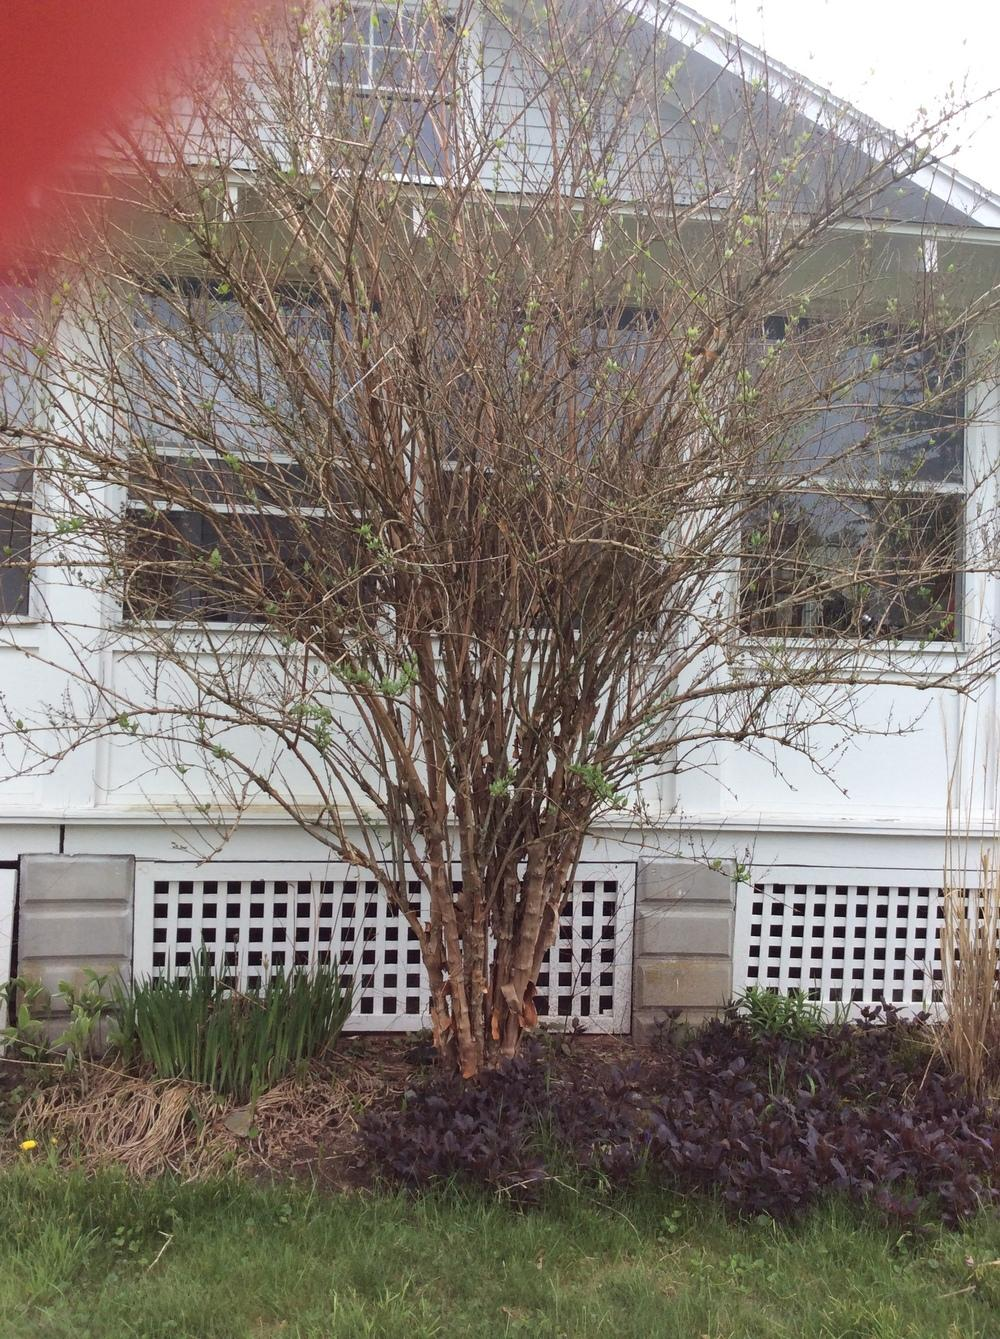 Plant Id Forum Multi Trunk Small Tree With Spring White Flowers